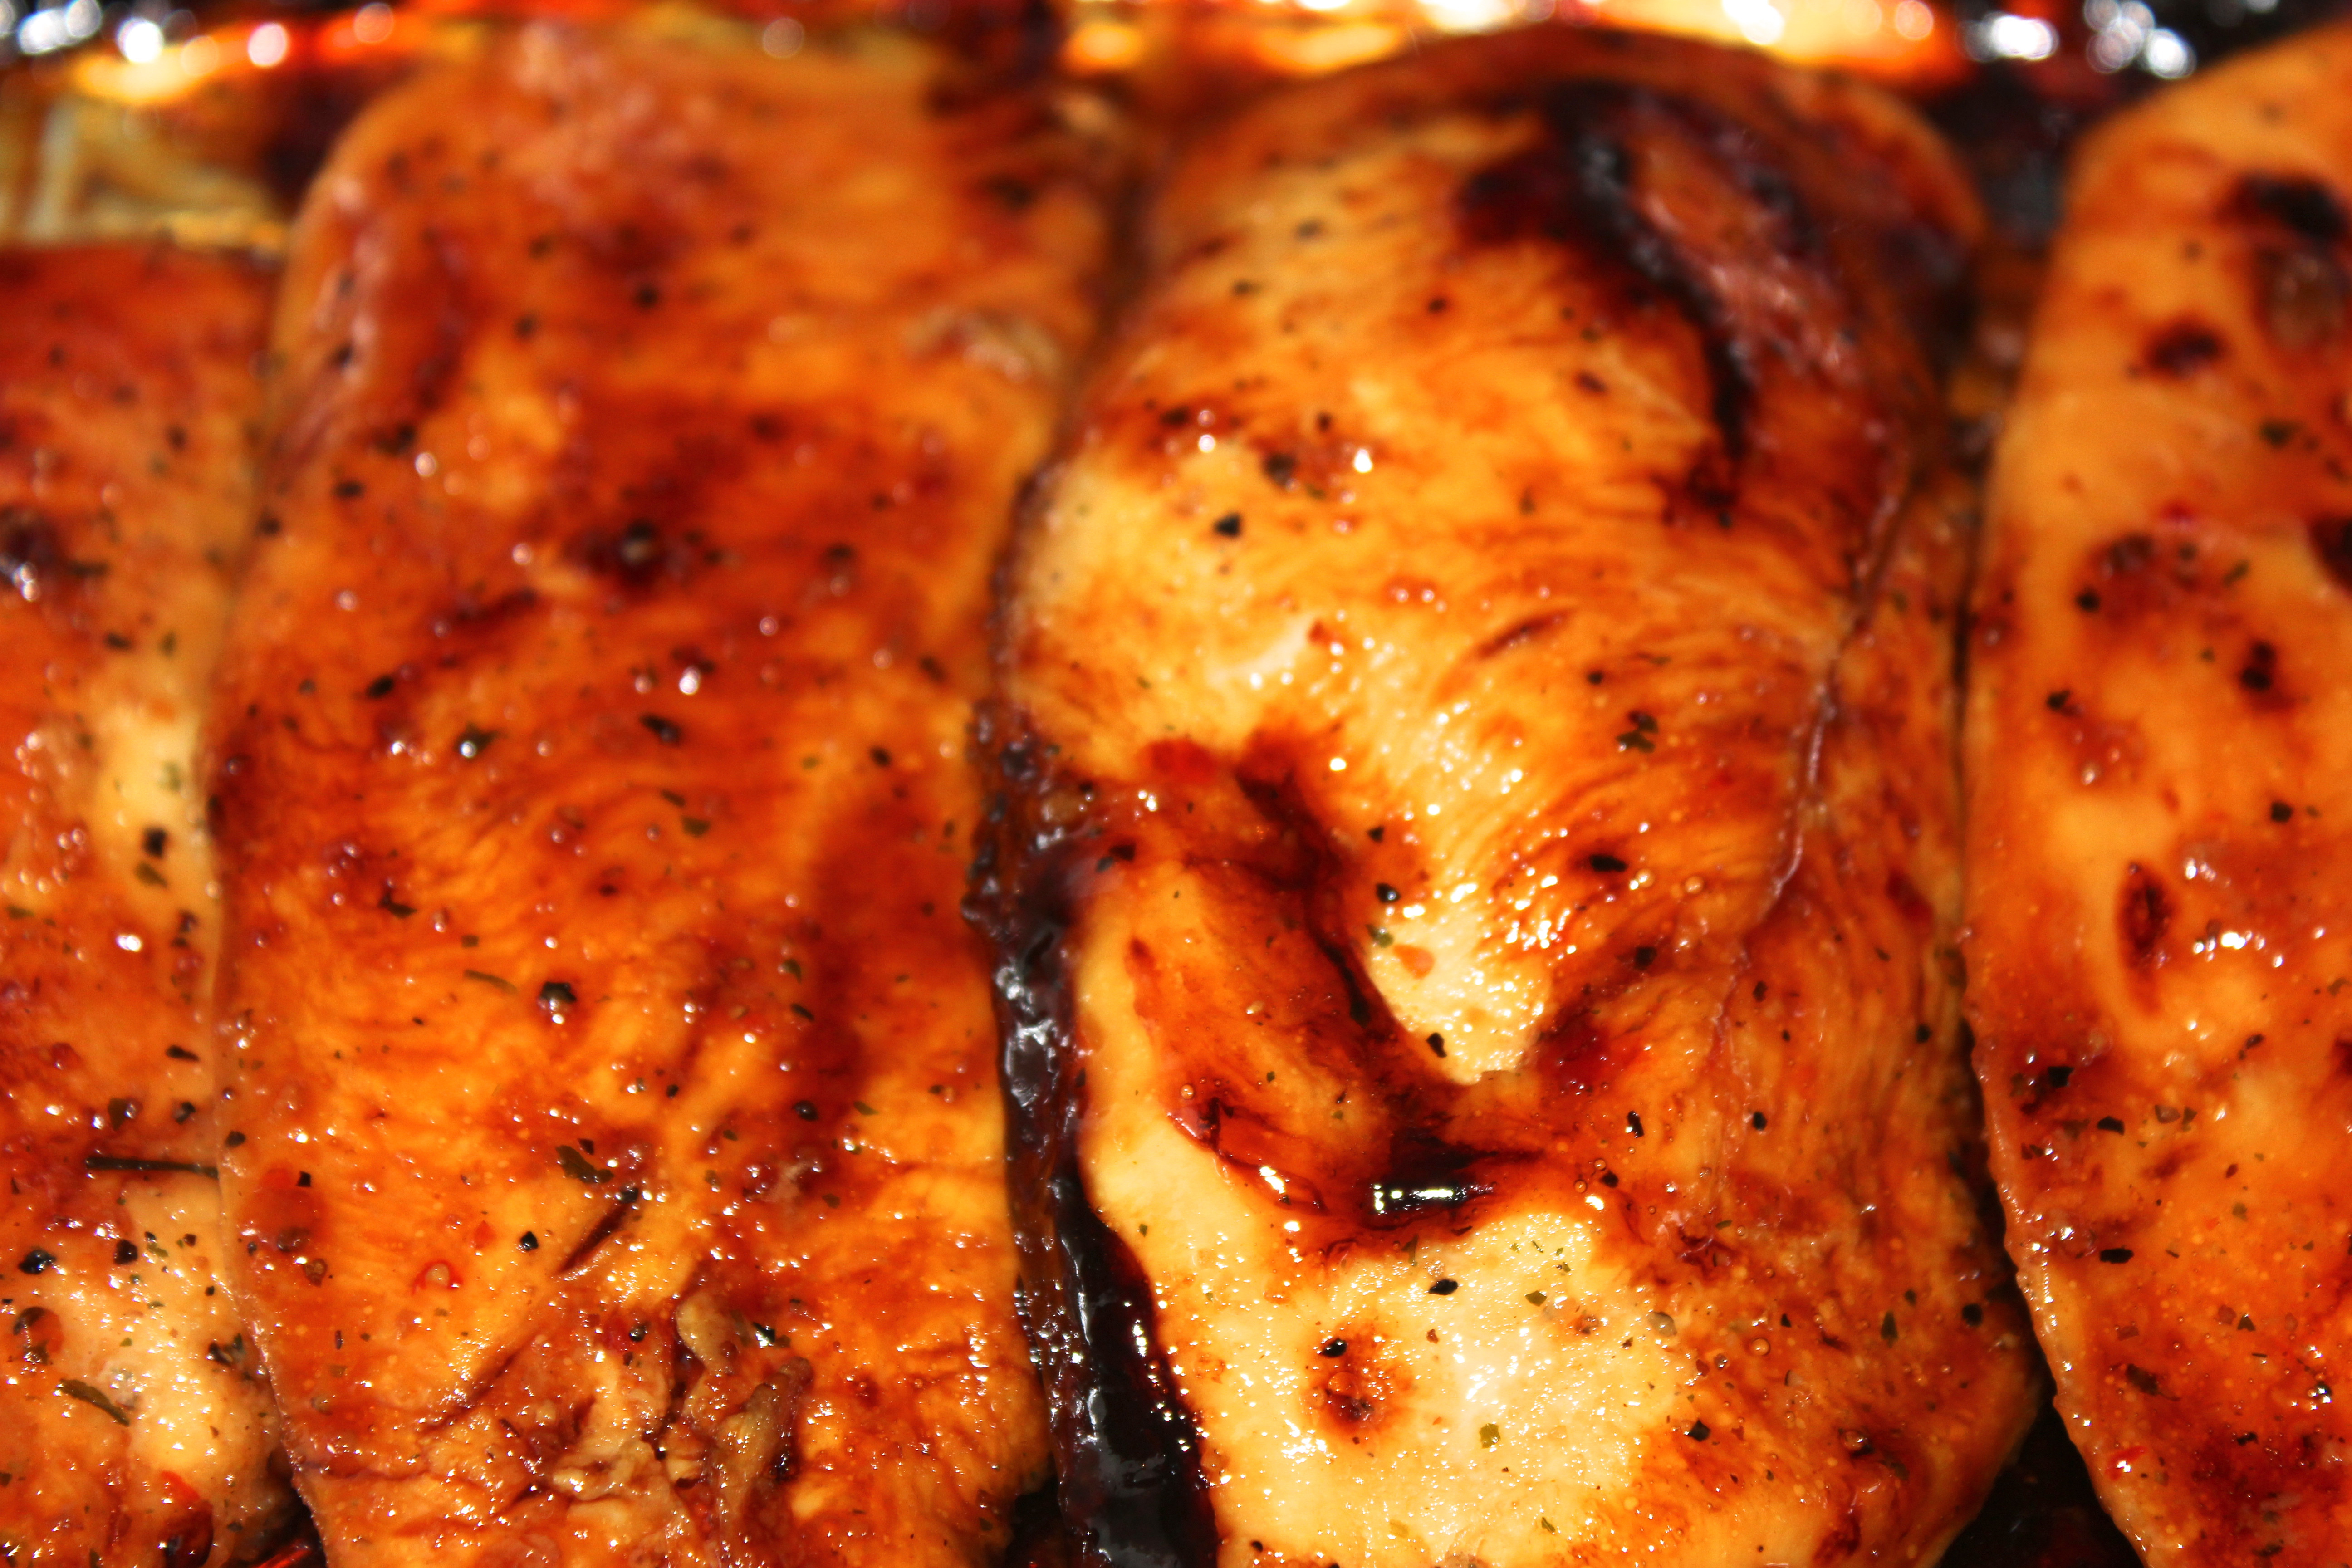 Baked Chicken With Italian Dressing  Italian Dressing Caramelized Chicken – Haiyens Kitchen